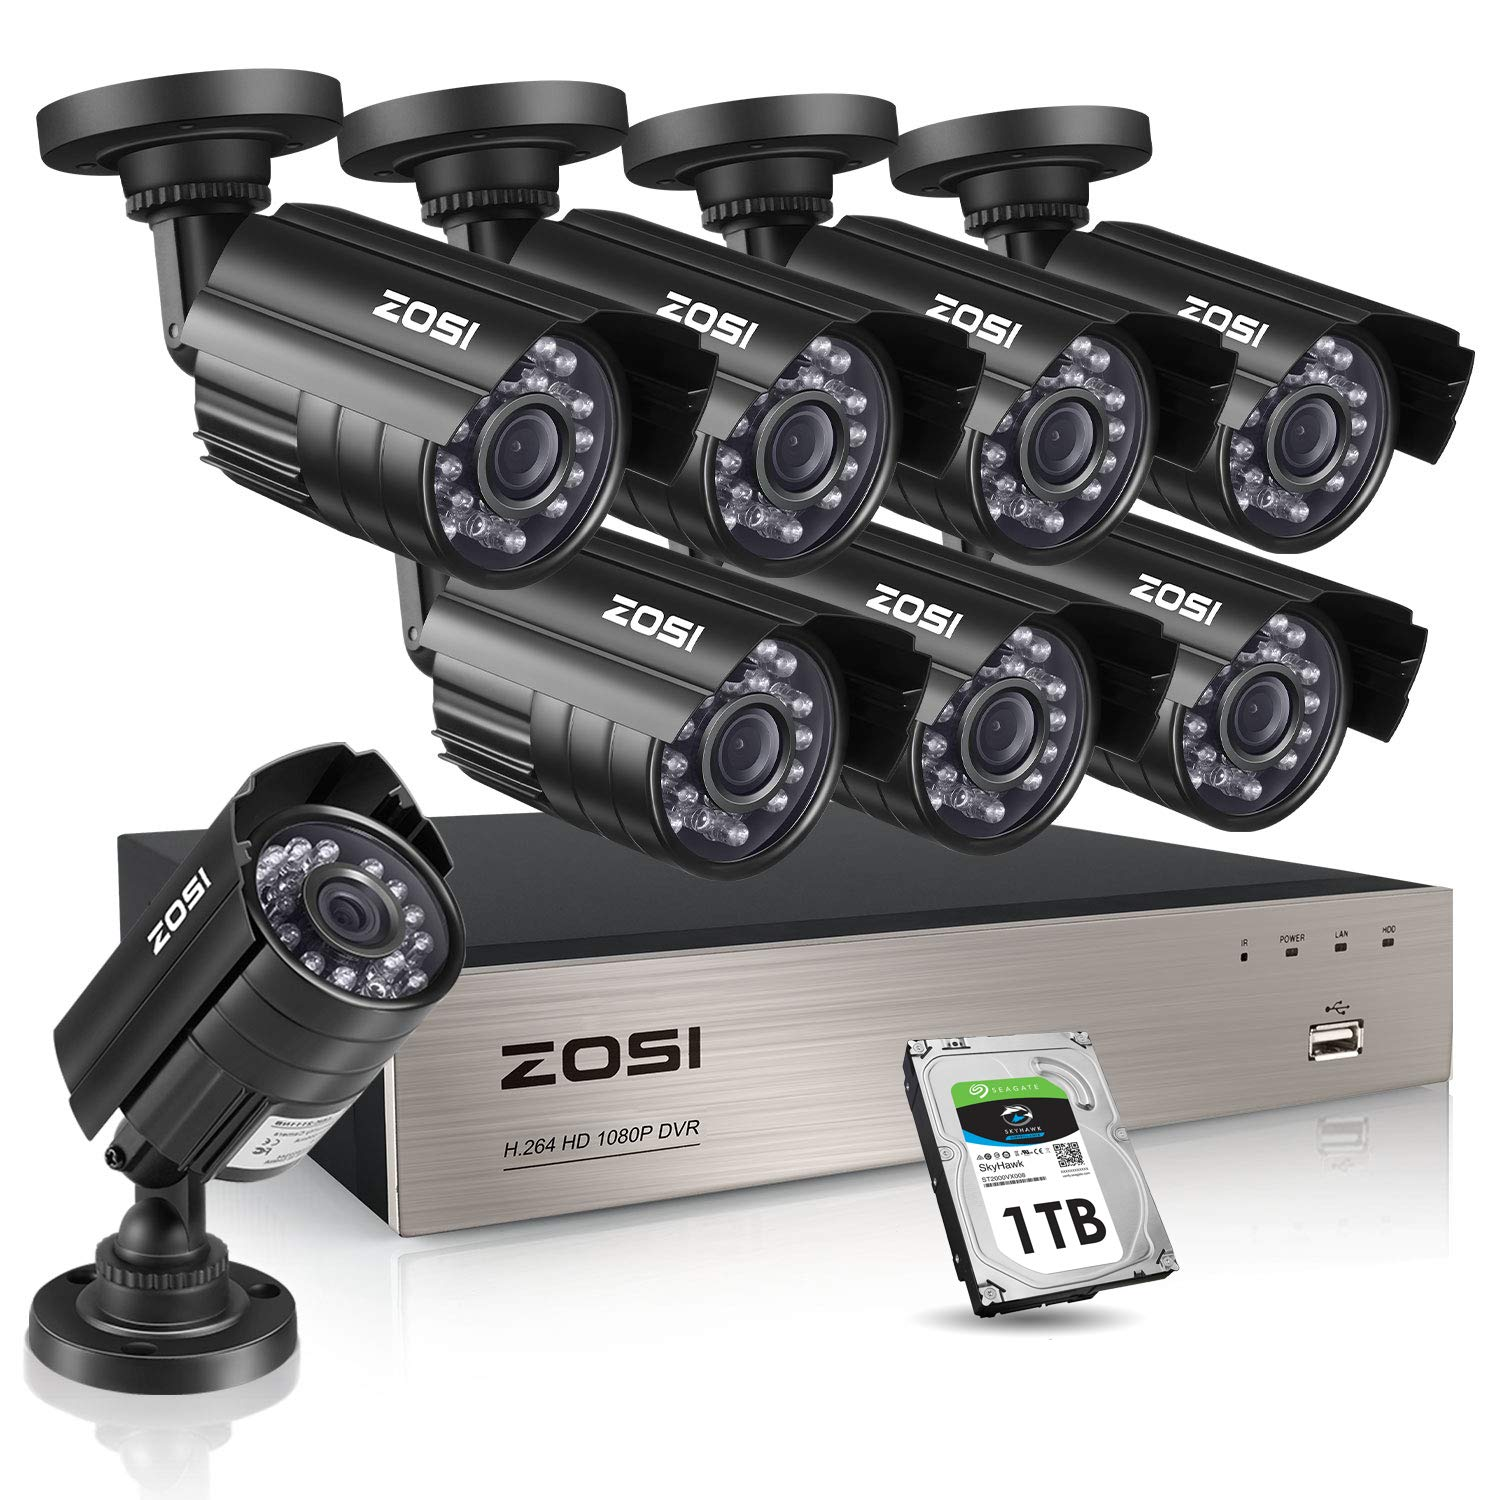 ZOSI 8CH 1080P Security Cameras System,8pcs 1080P Indoor Outdoor 1920TVL Weatherproof Surveillance Cameras, 8-Channel 1080P HD-TVI CCTV DVR System ...